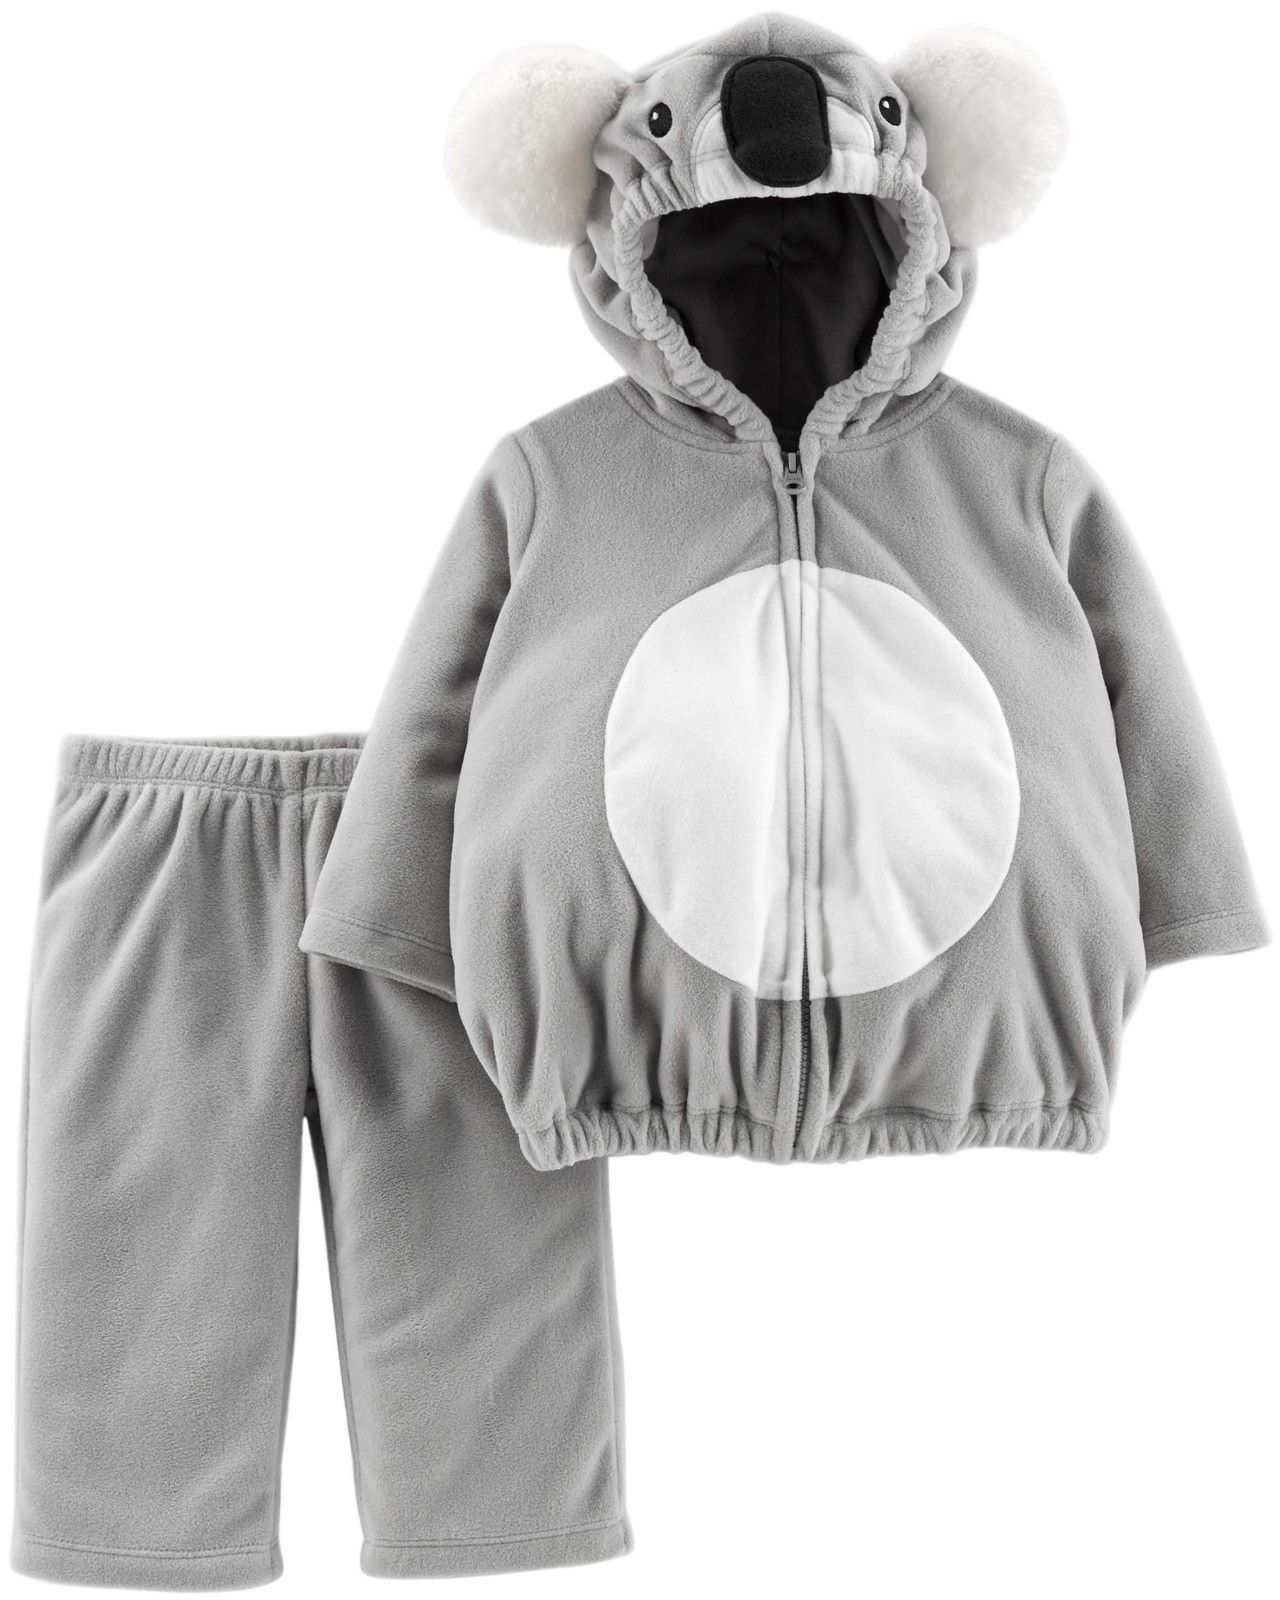 NEW NWT Boys or Girls Carter's Halloween Costume Koala 3/6 or 6/9 Months